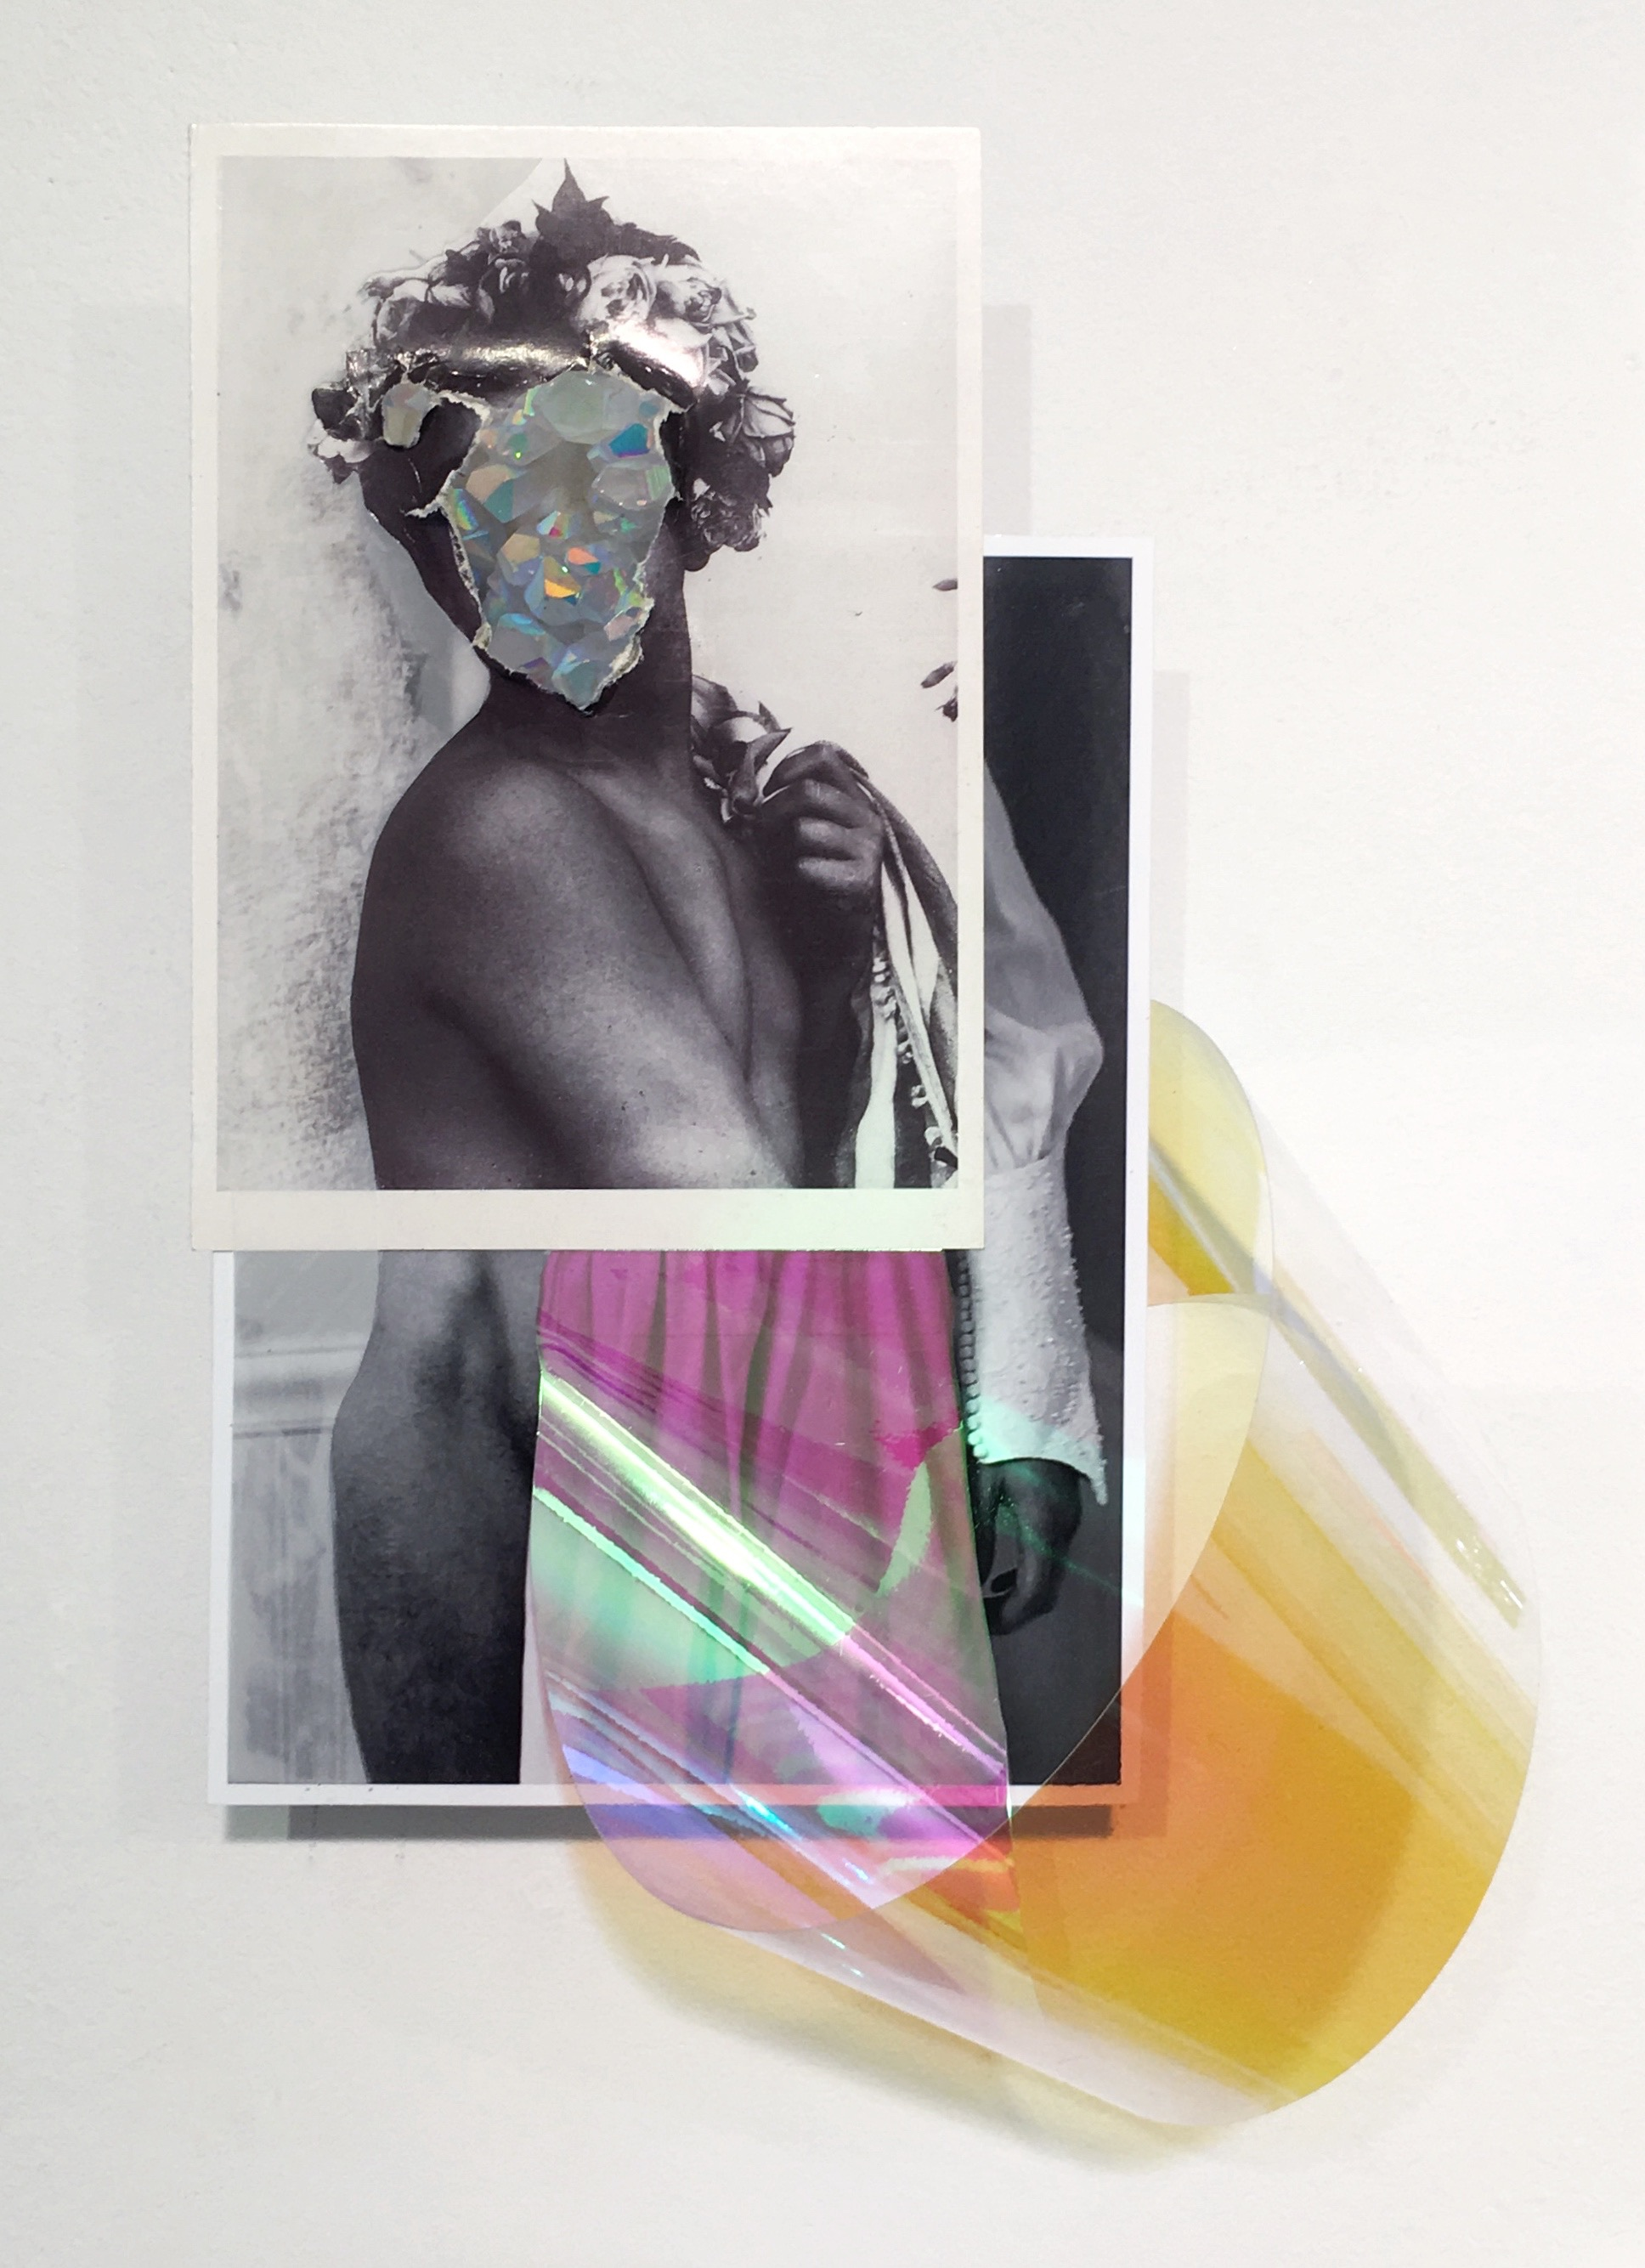 Untitled (Möbius strip tease), 2018, Collaged photographs, postcards, tape, vinyl, and crystal, 10 x 5 inches (variable).